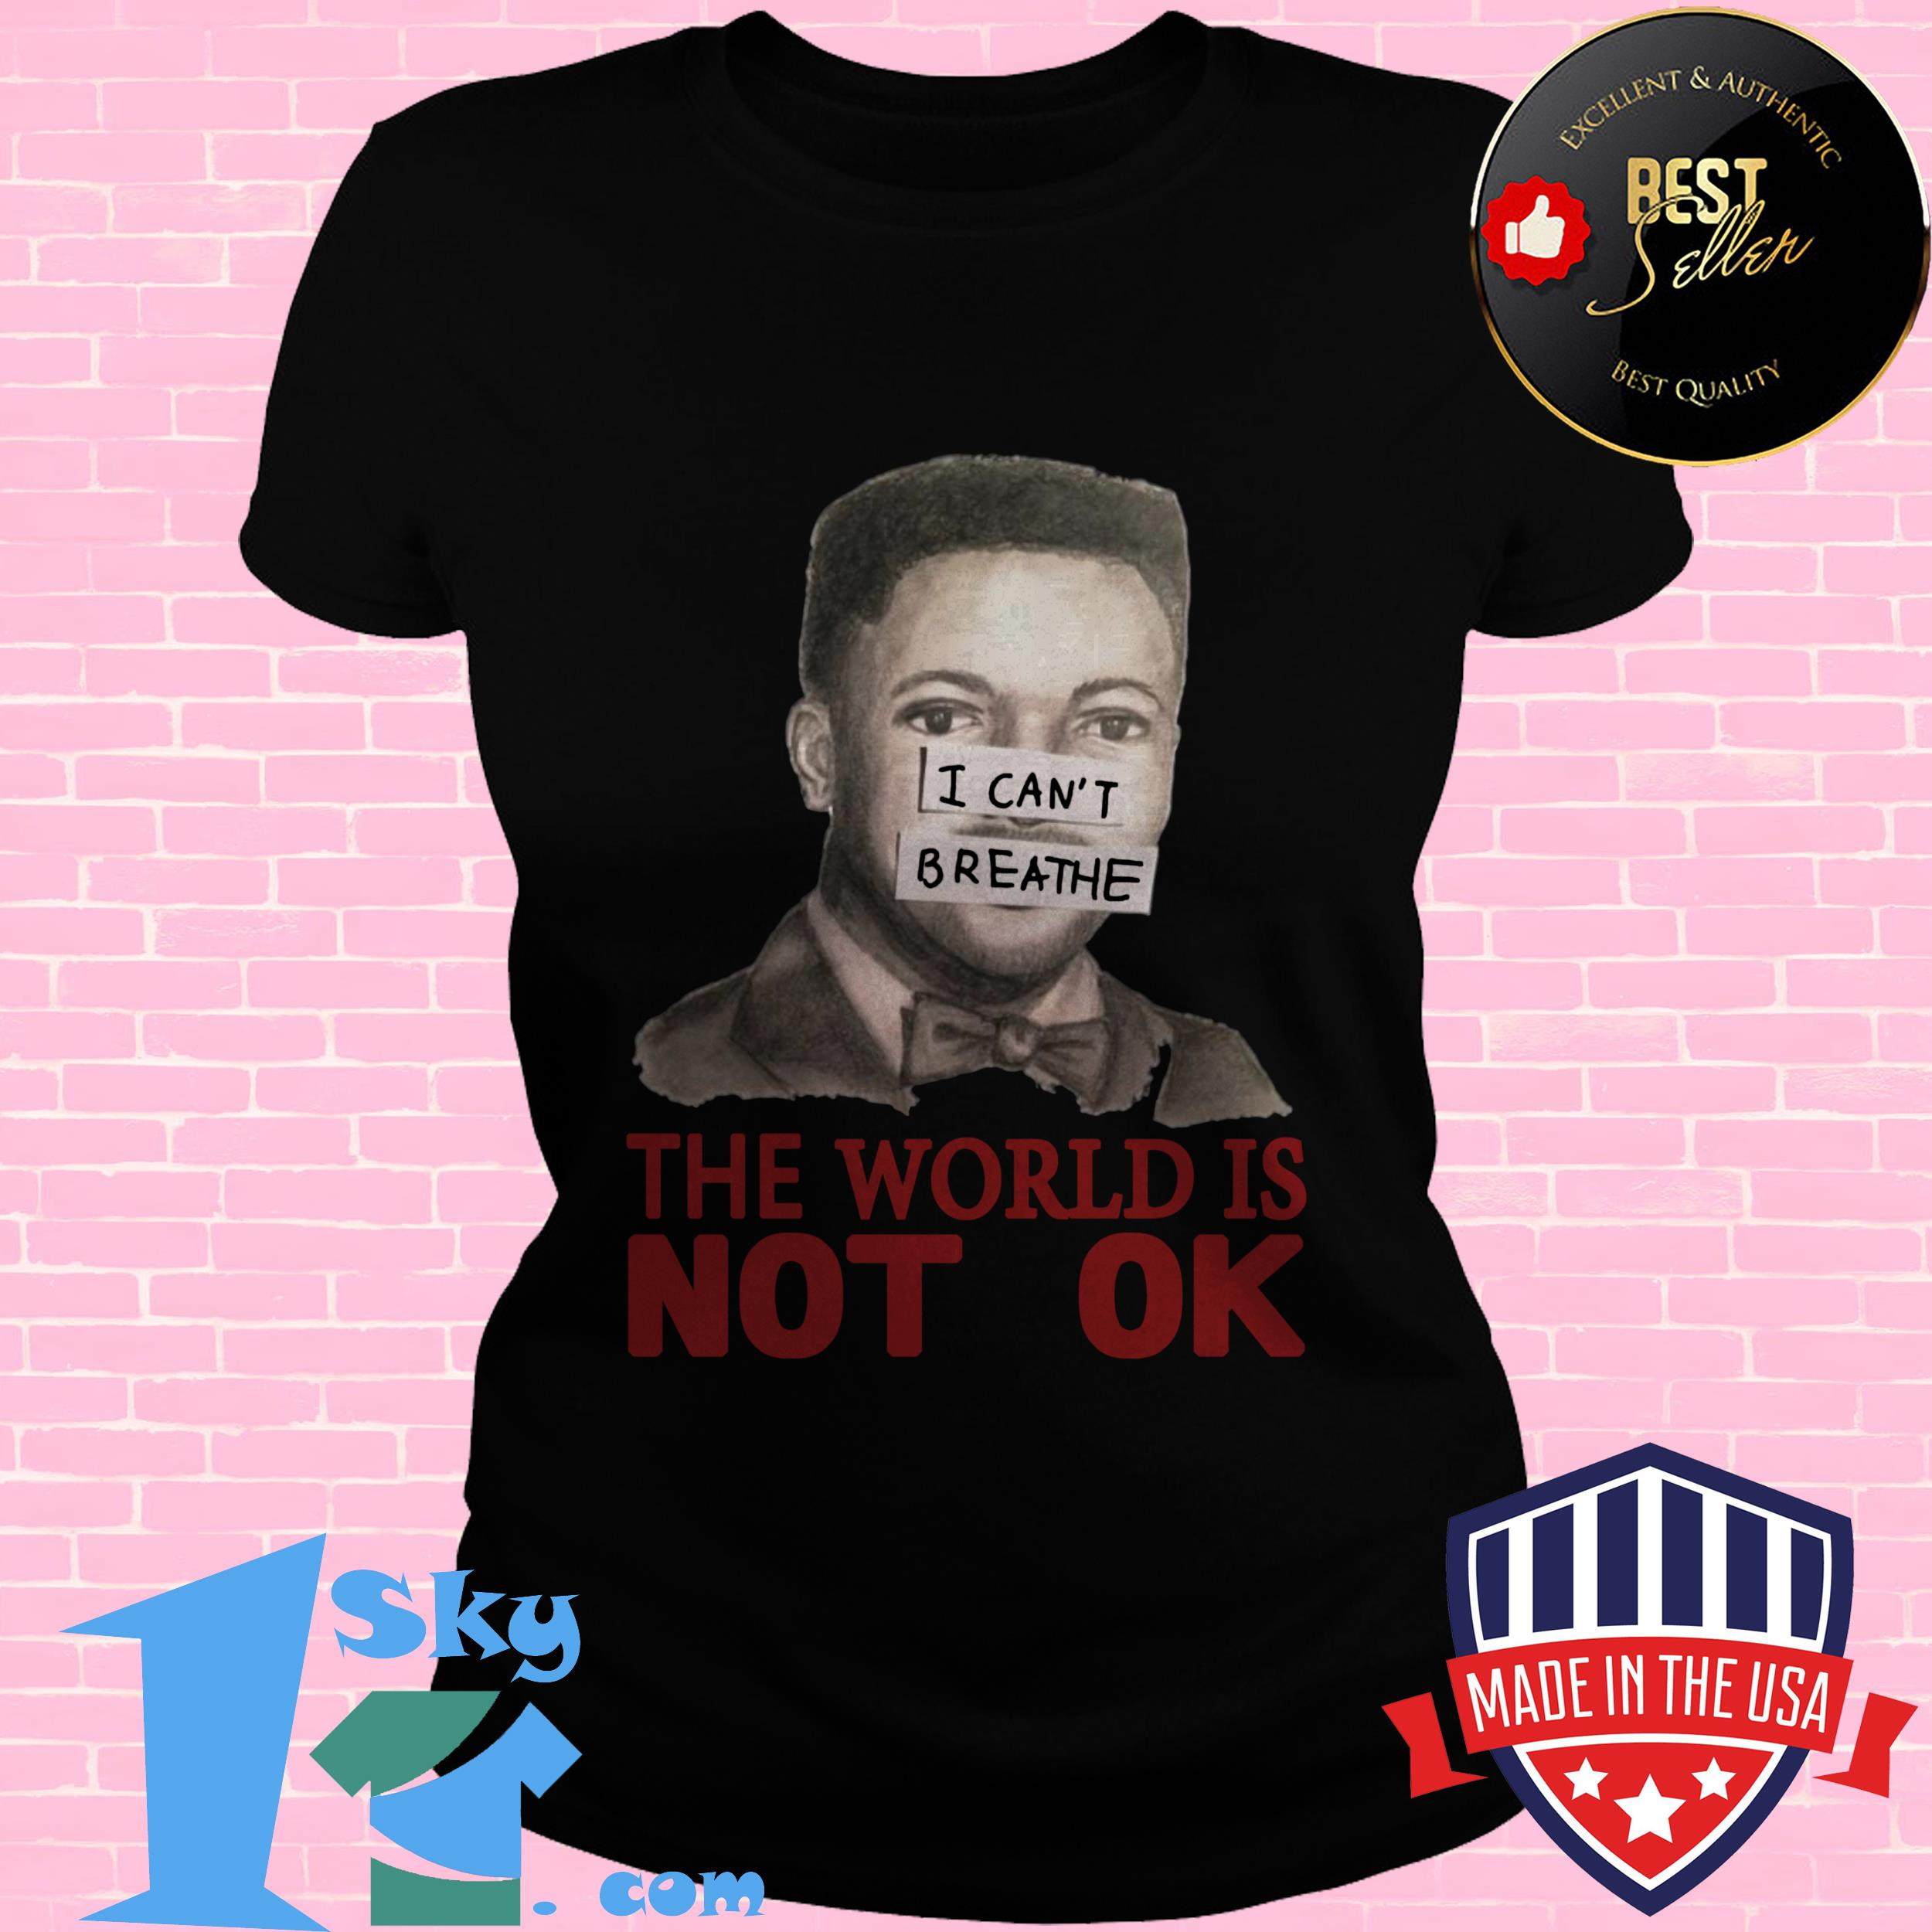 i cant breathe the world is not ok gift ladies tee - I Can't Breathe The World Is Not Ok Gift shirt